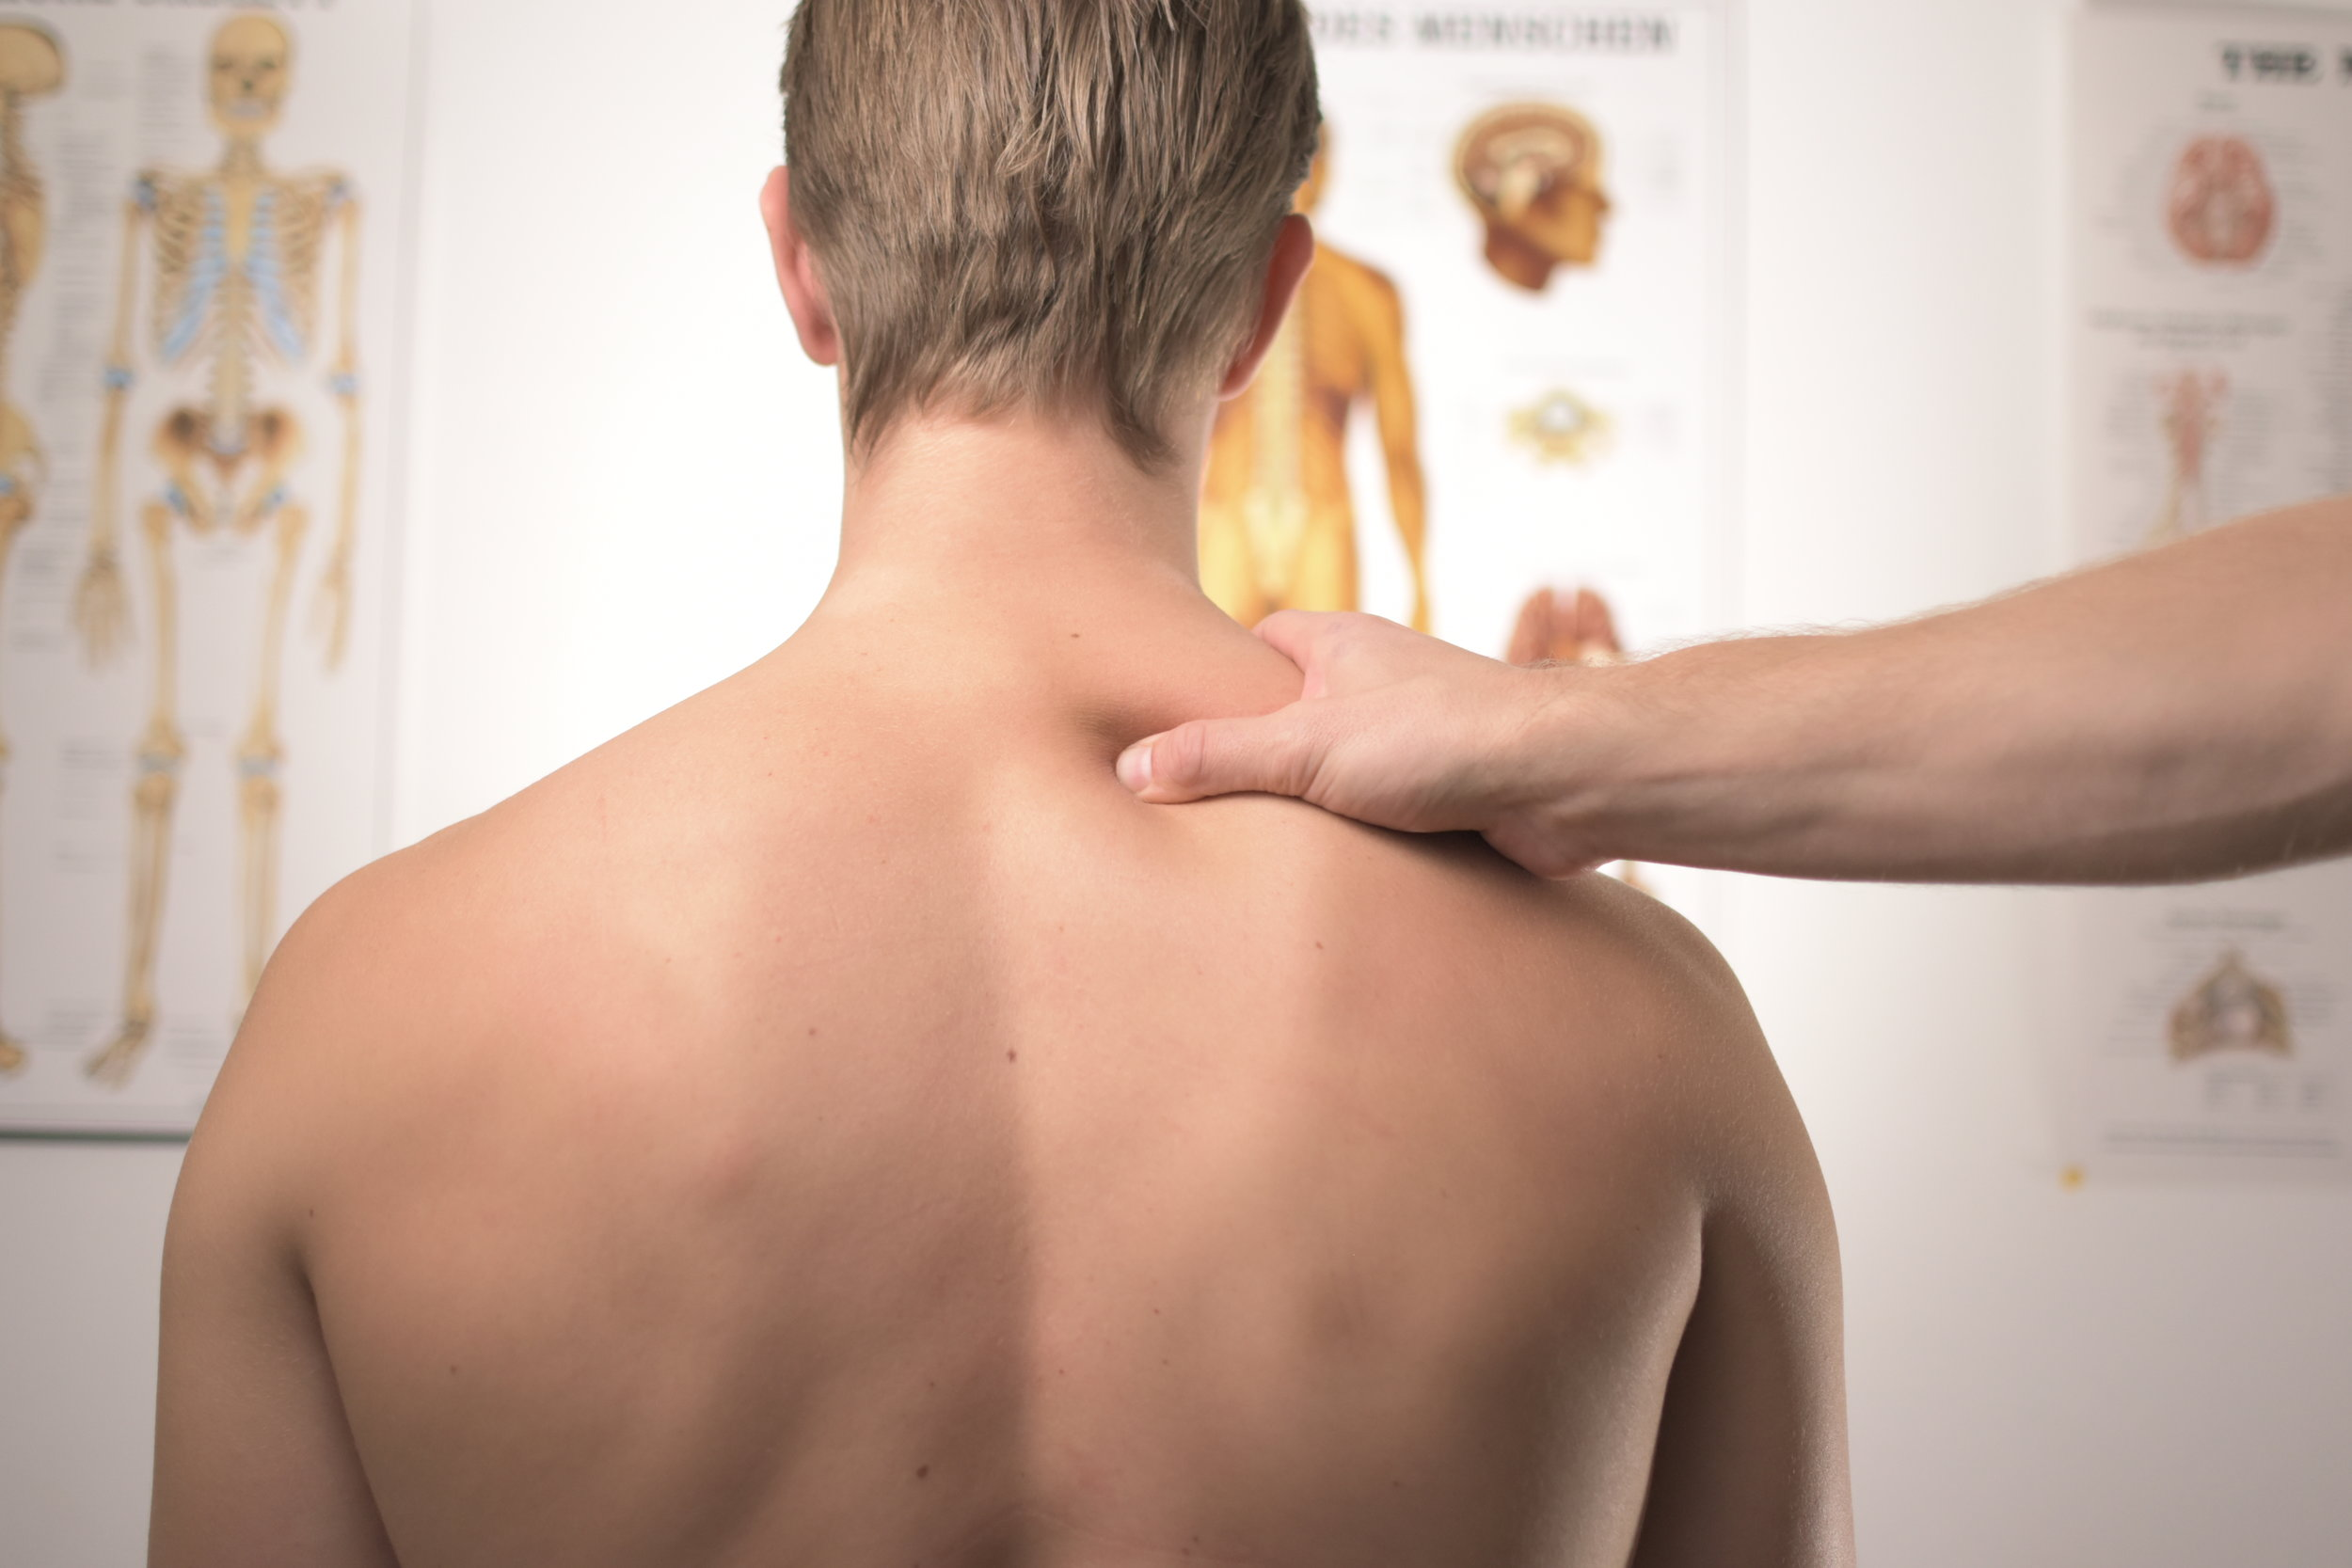 Neck/Cervical Pain Therapy - Chronic neck pain is one of the most common treatments at JC Physical Therapy. Therapy programs for neck pain include treatments to help reduce pain, stiffness, improve range of motion, develop strengthening of the neck and its supporting musculature, and provide strategies to prevent pain from happening again…